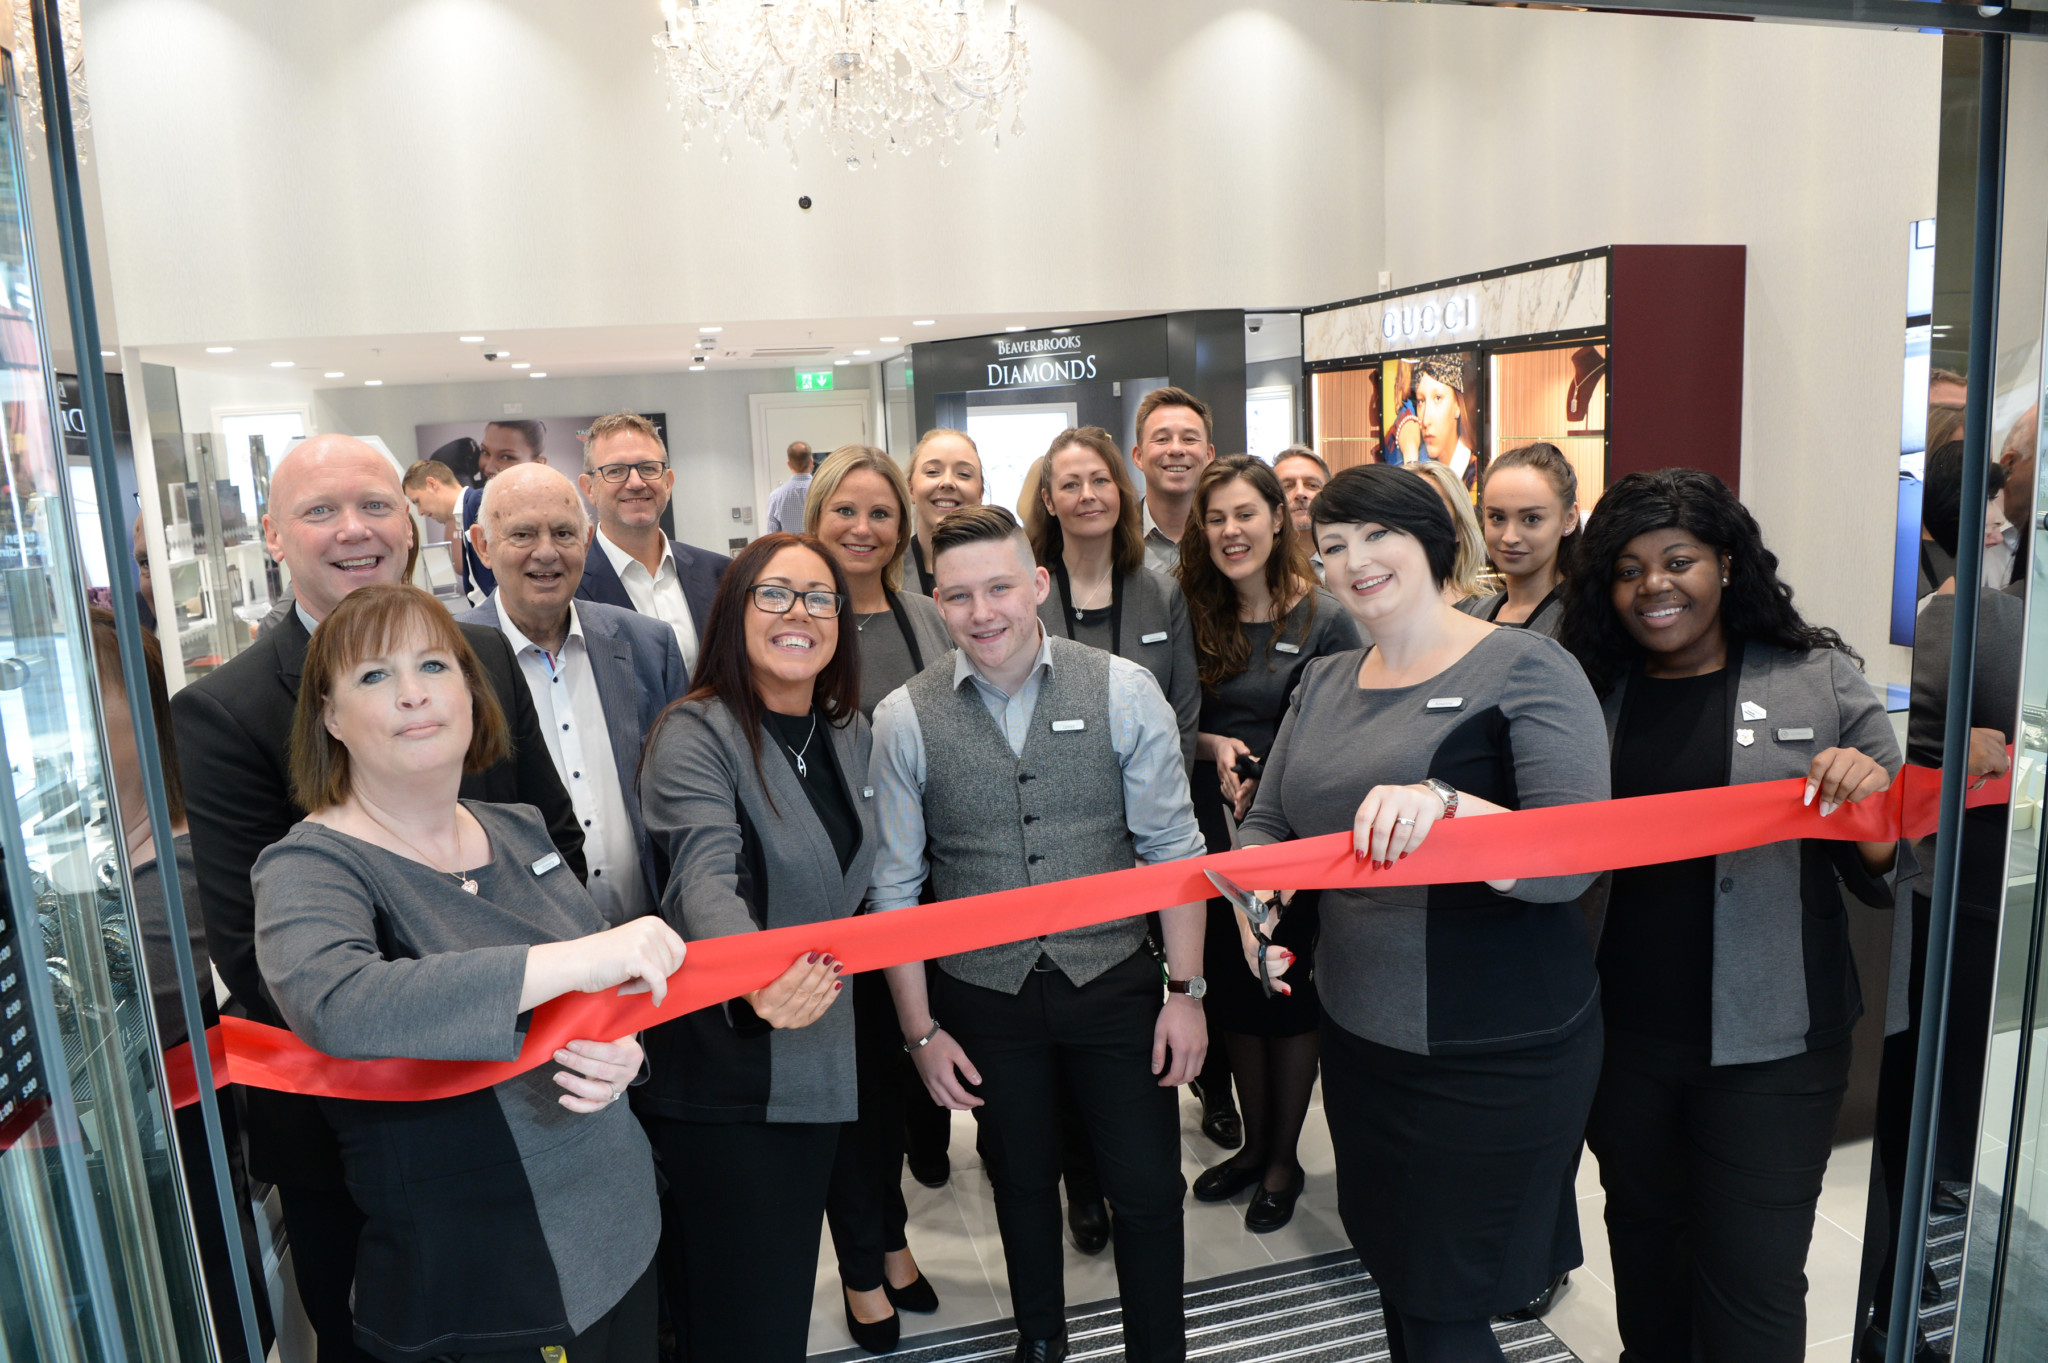 The Bracknell store opened as an anchor tenant at the new Lexicon shopping centre.